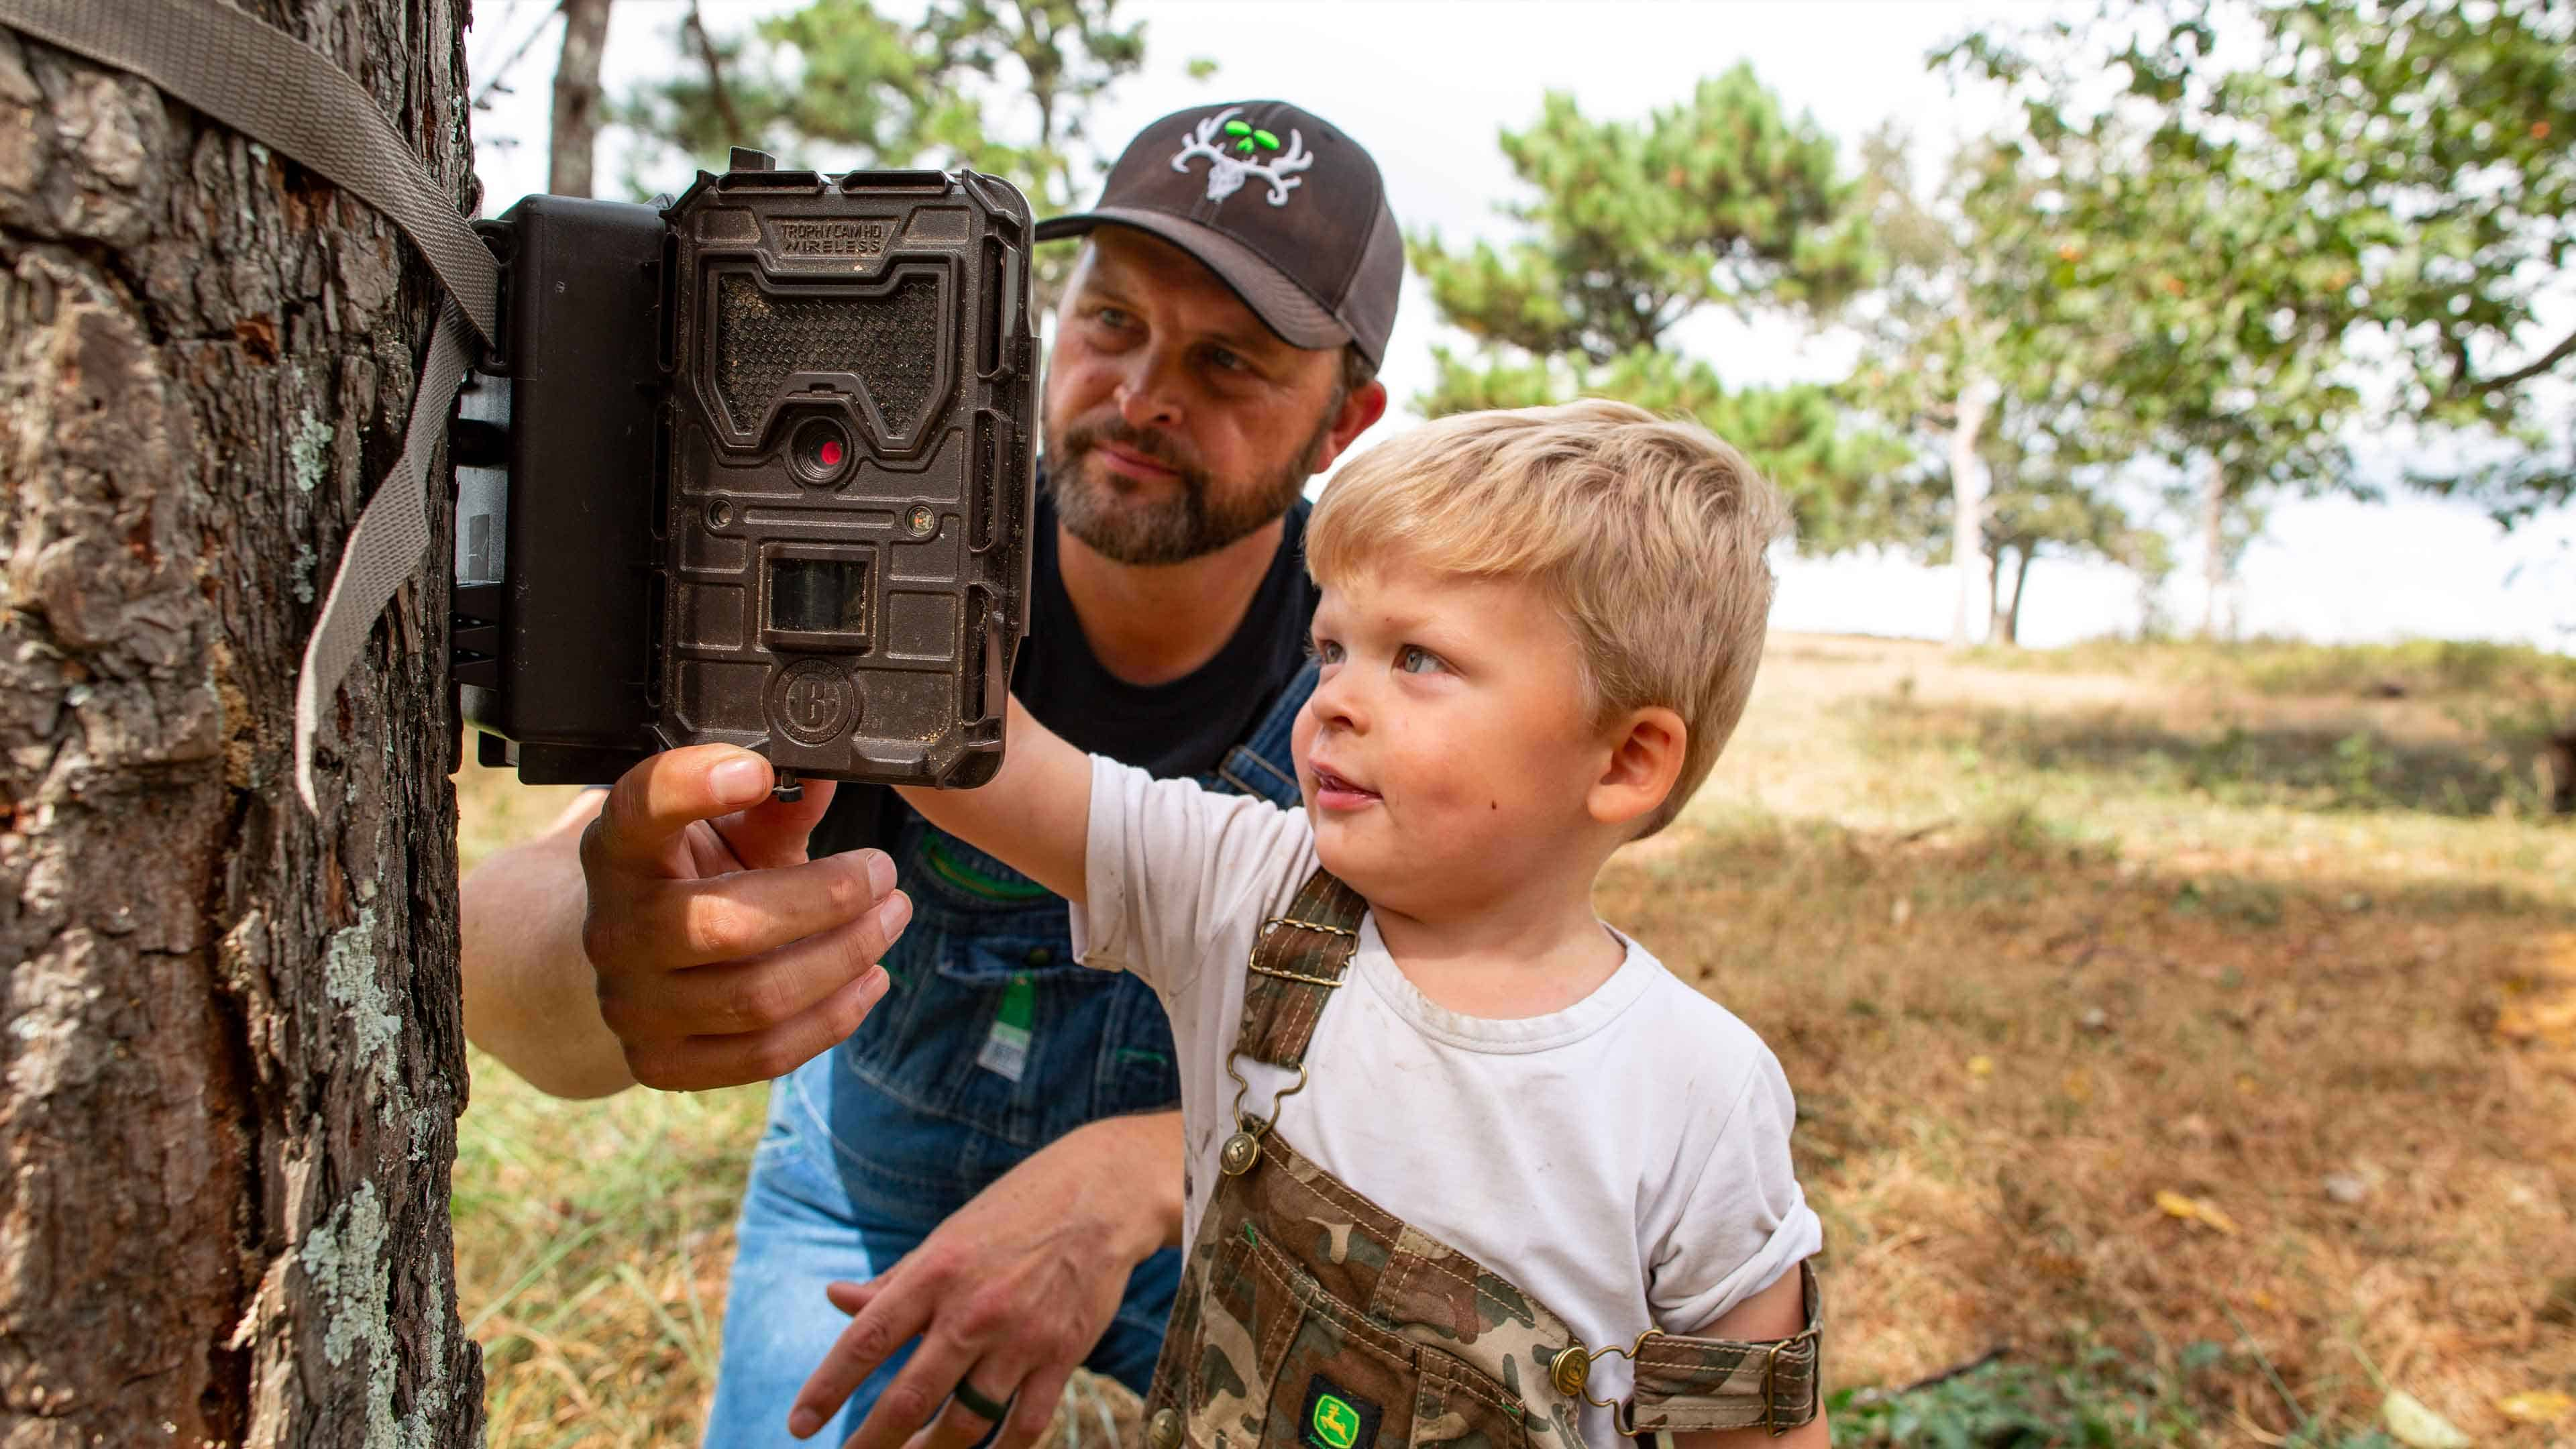 Deer Hunting Tip: Take inventory with trail cams